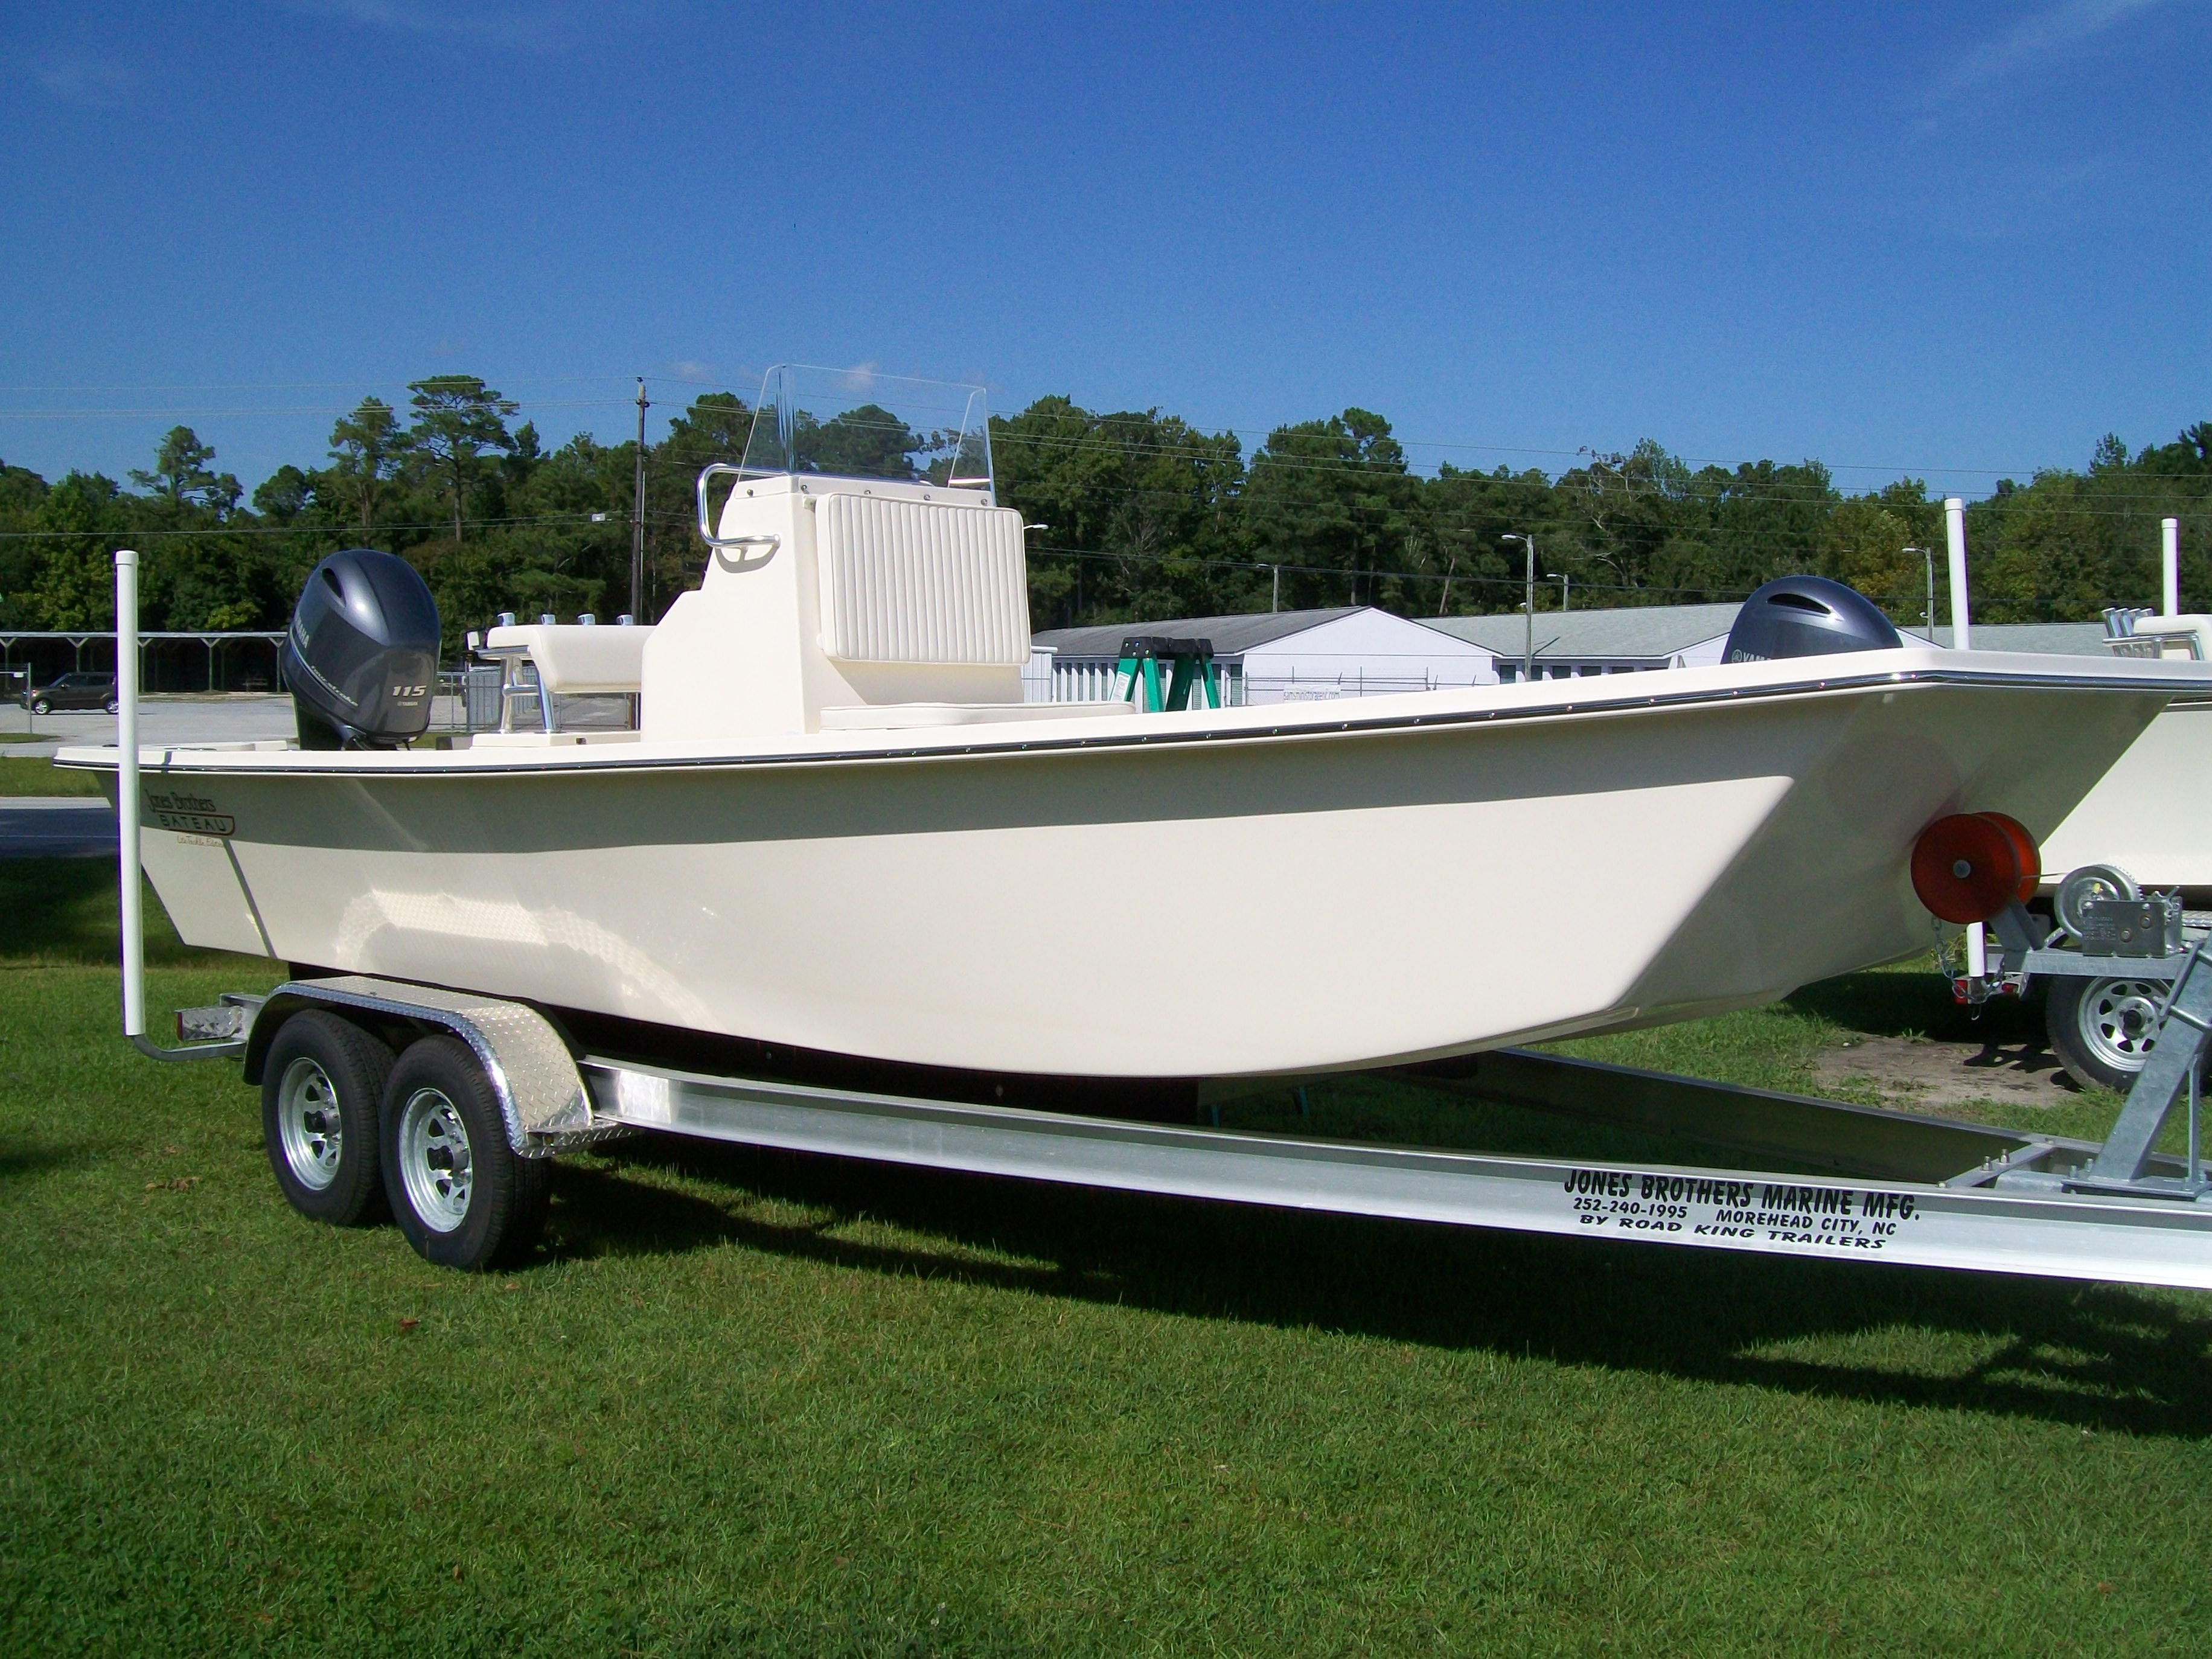 Tidewater Boats For Sale >> 2018 Jones Brothers 23' Bateau Power Boat For Sale - www.yachtworld.com